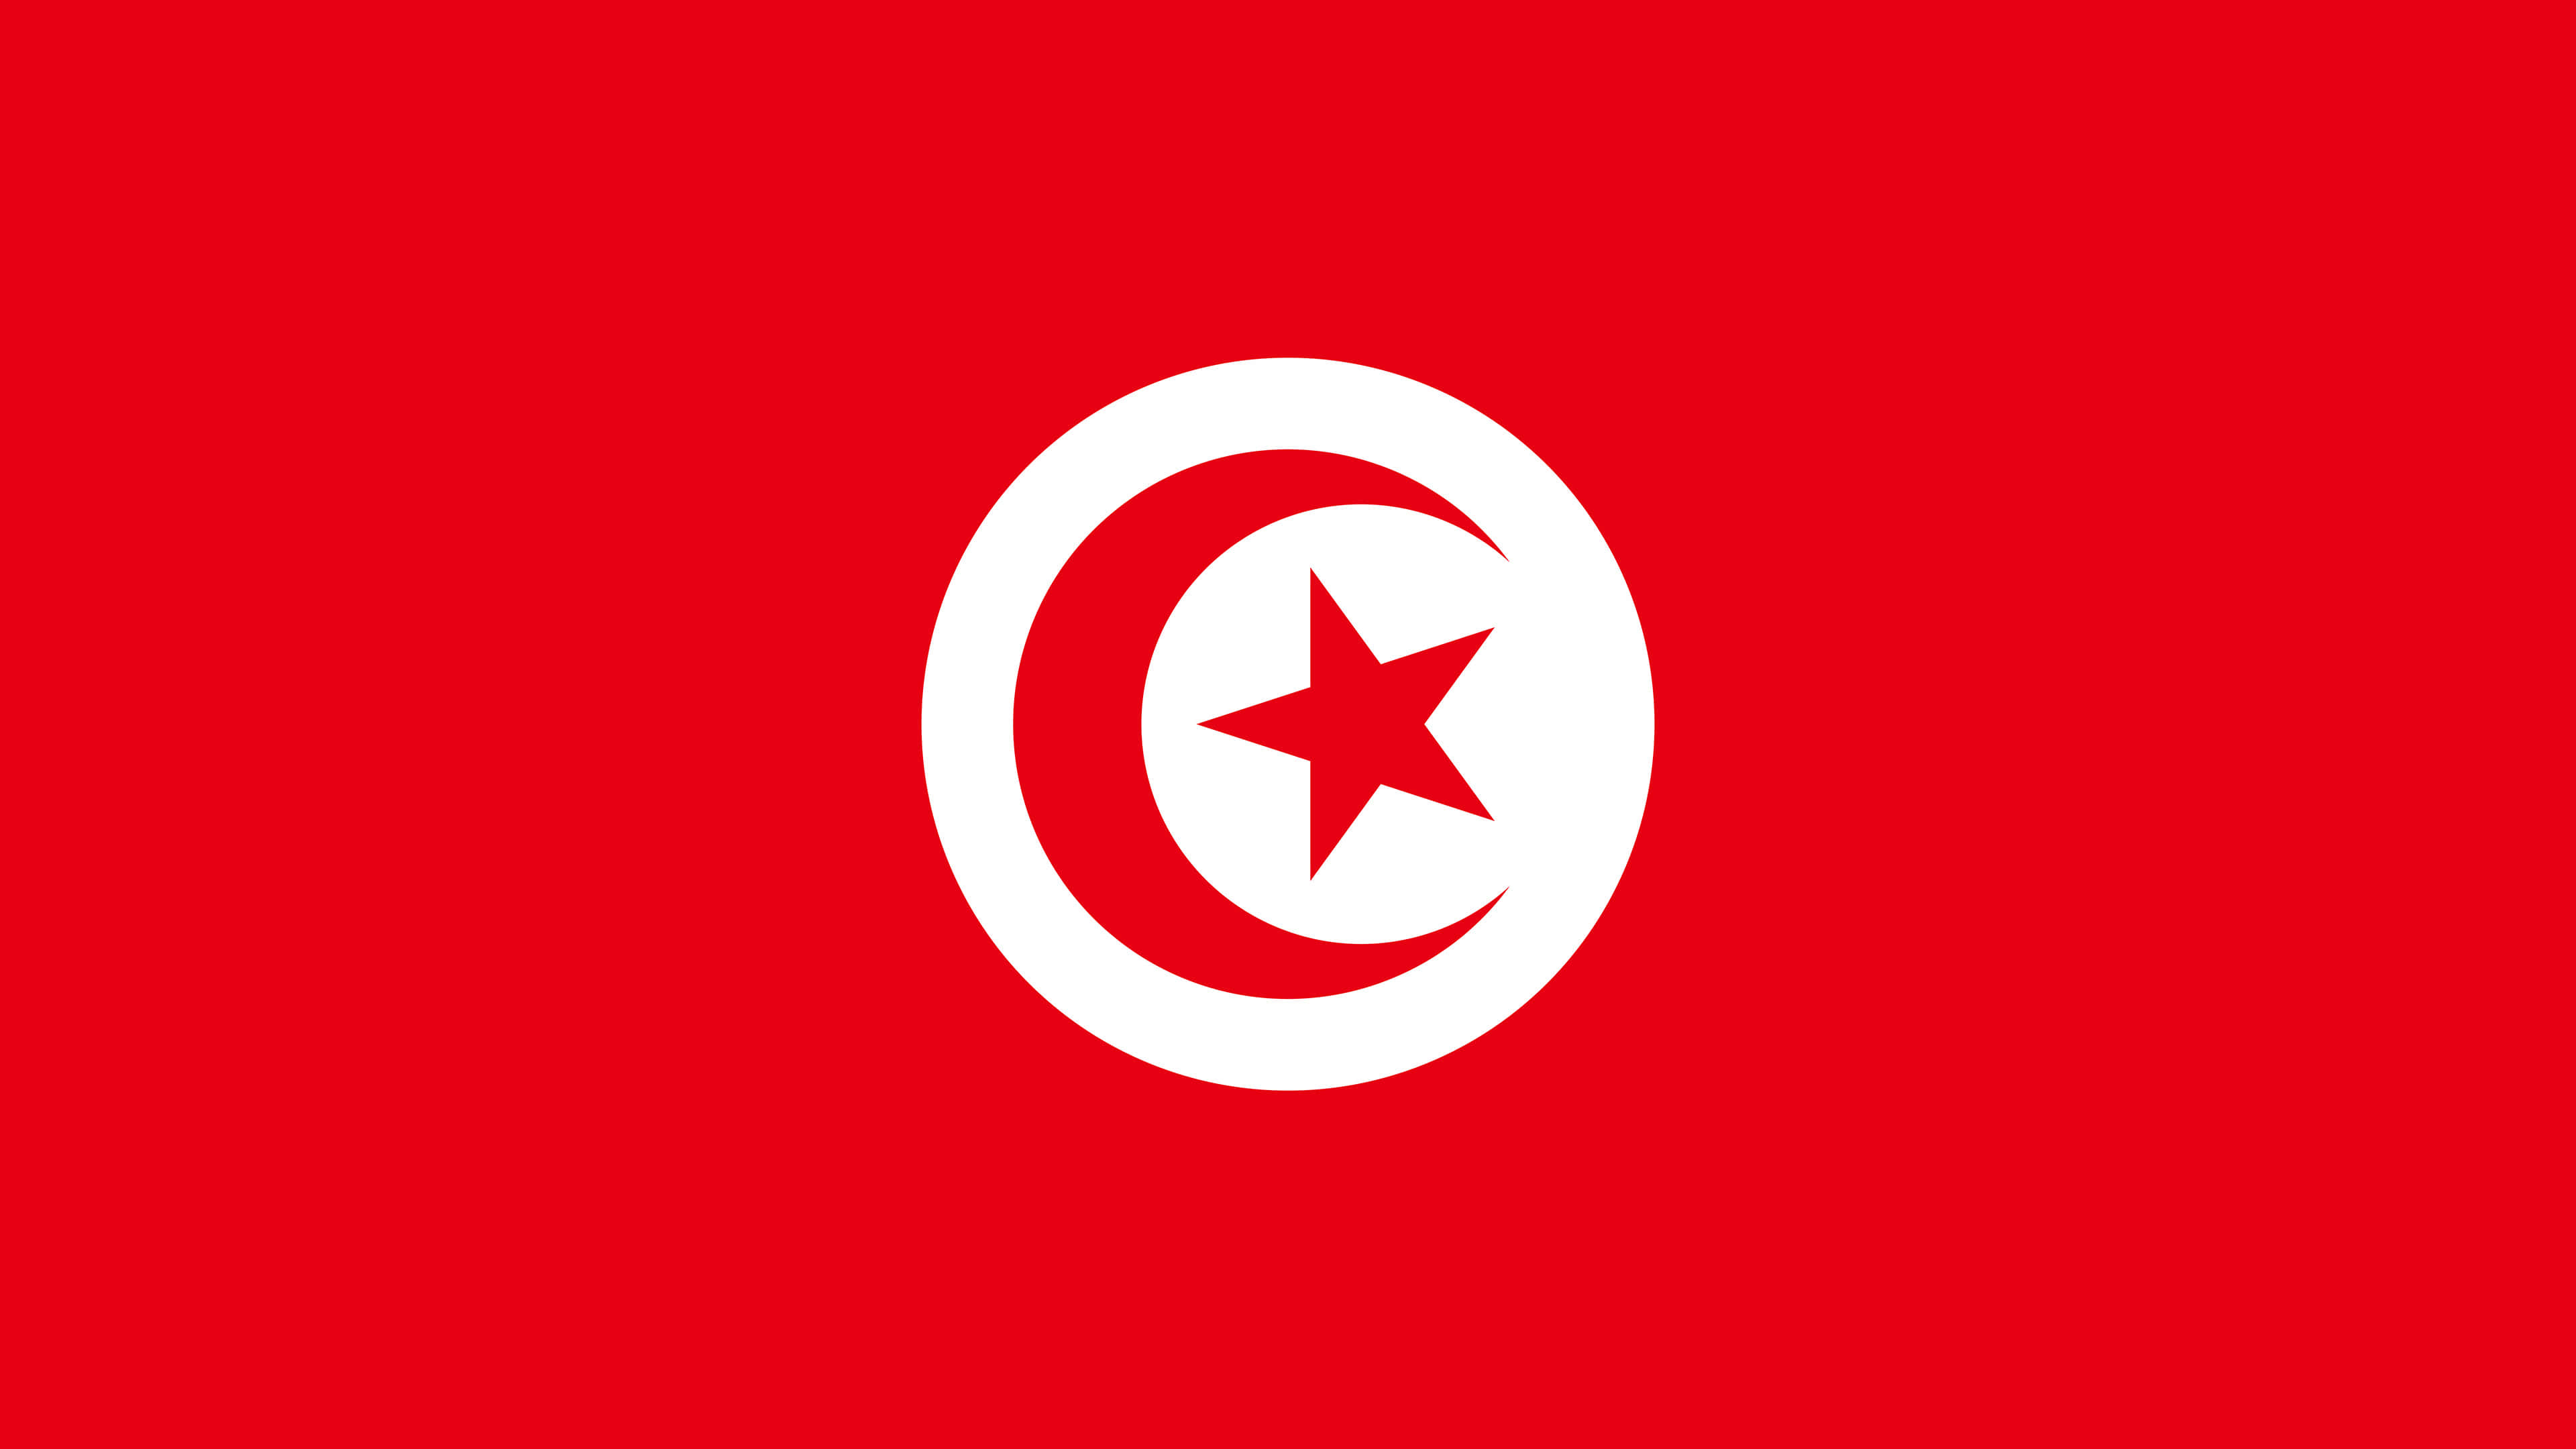 tunisia flag uhd 4k wallpaper